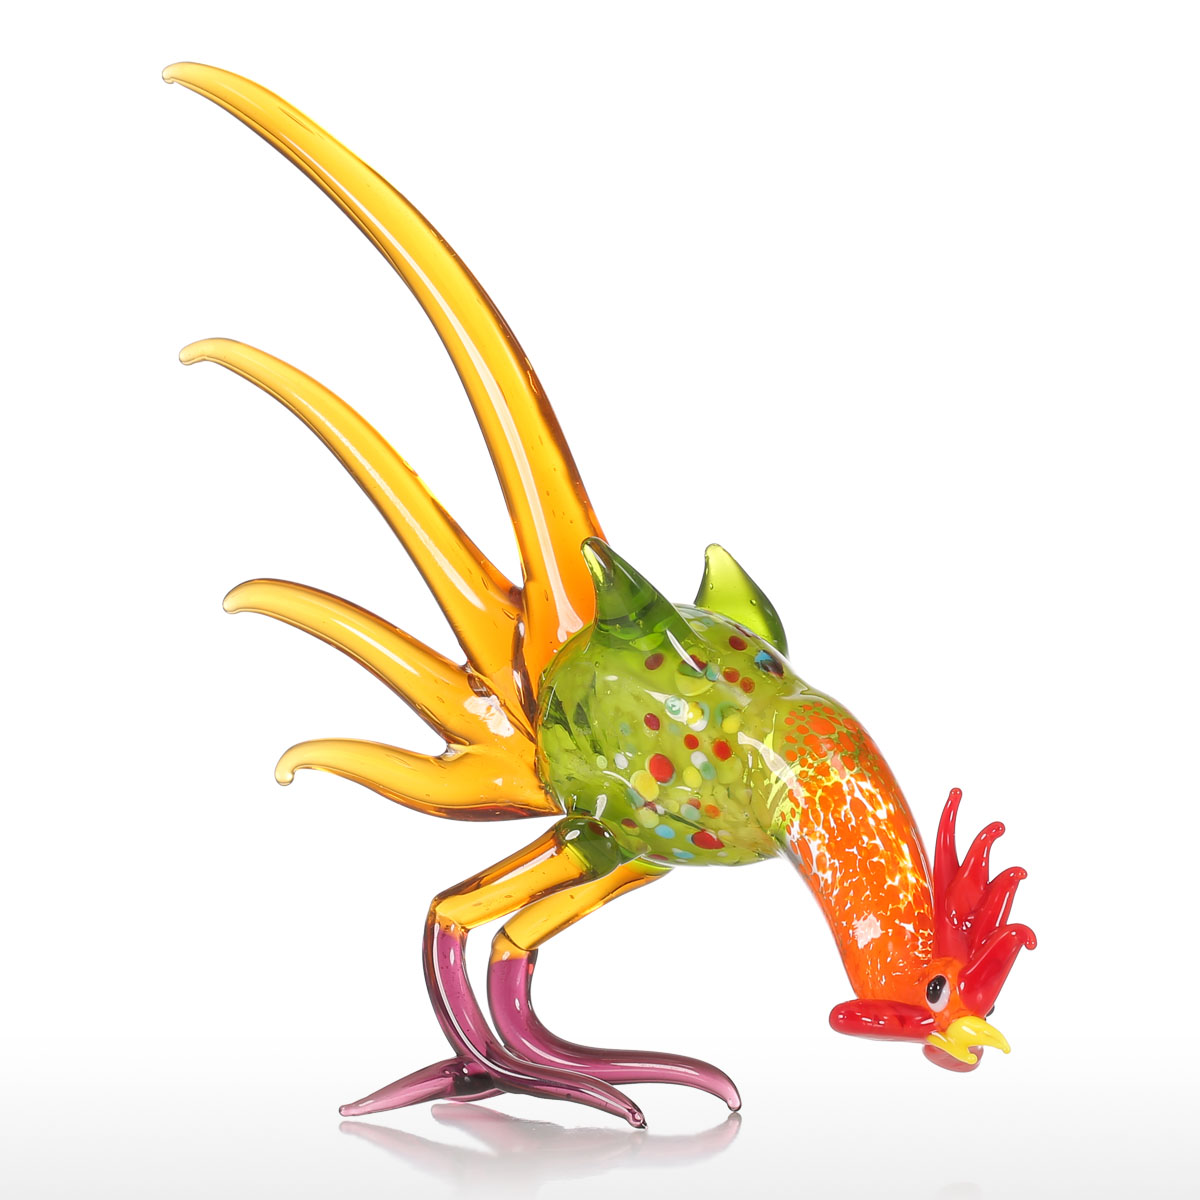 Tooarts Metal Figurine Iron Rooster Home Decor Articles: Best And Cheap Multicolored Tooarts Rooster Gift Glass